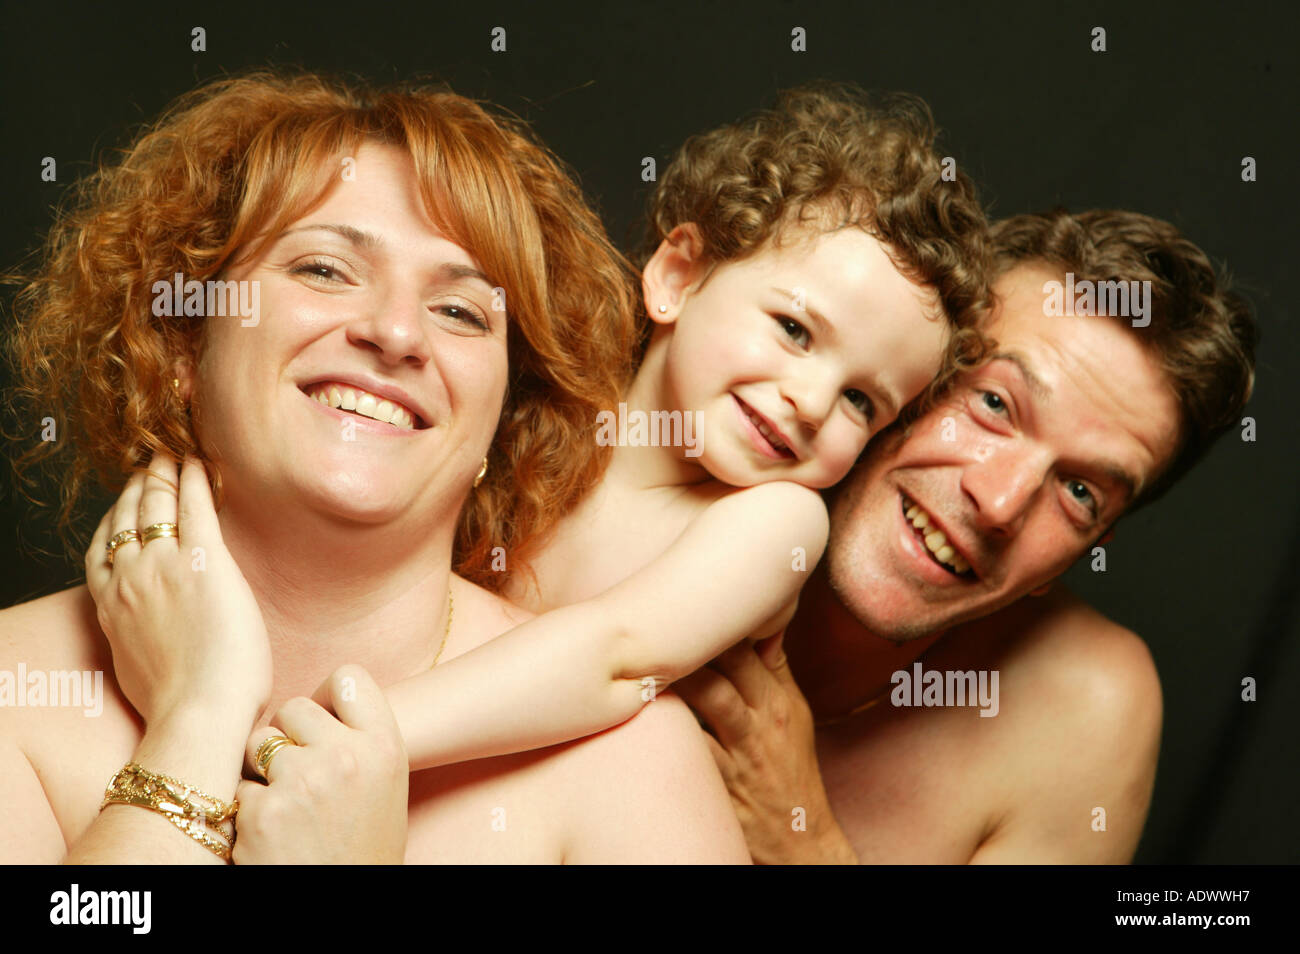 Family nude pictures